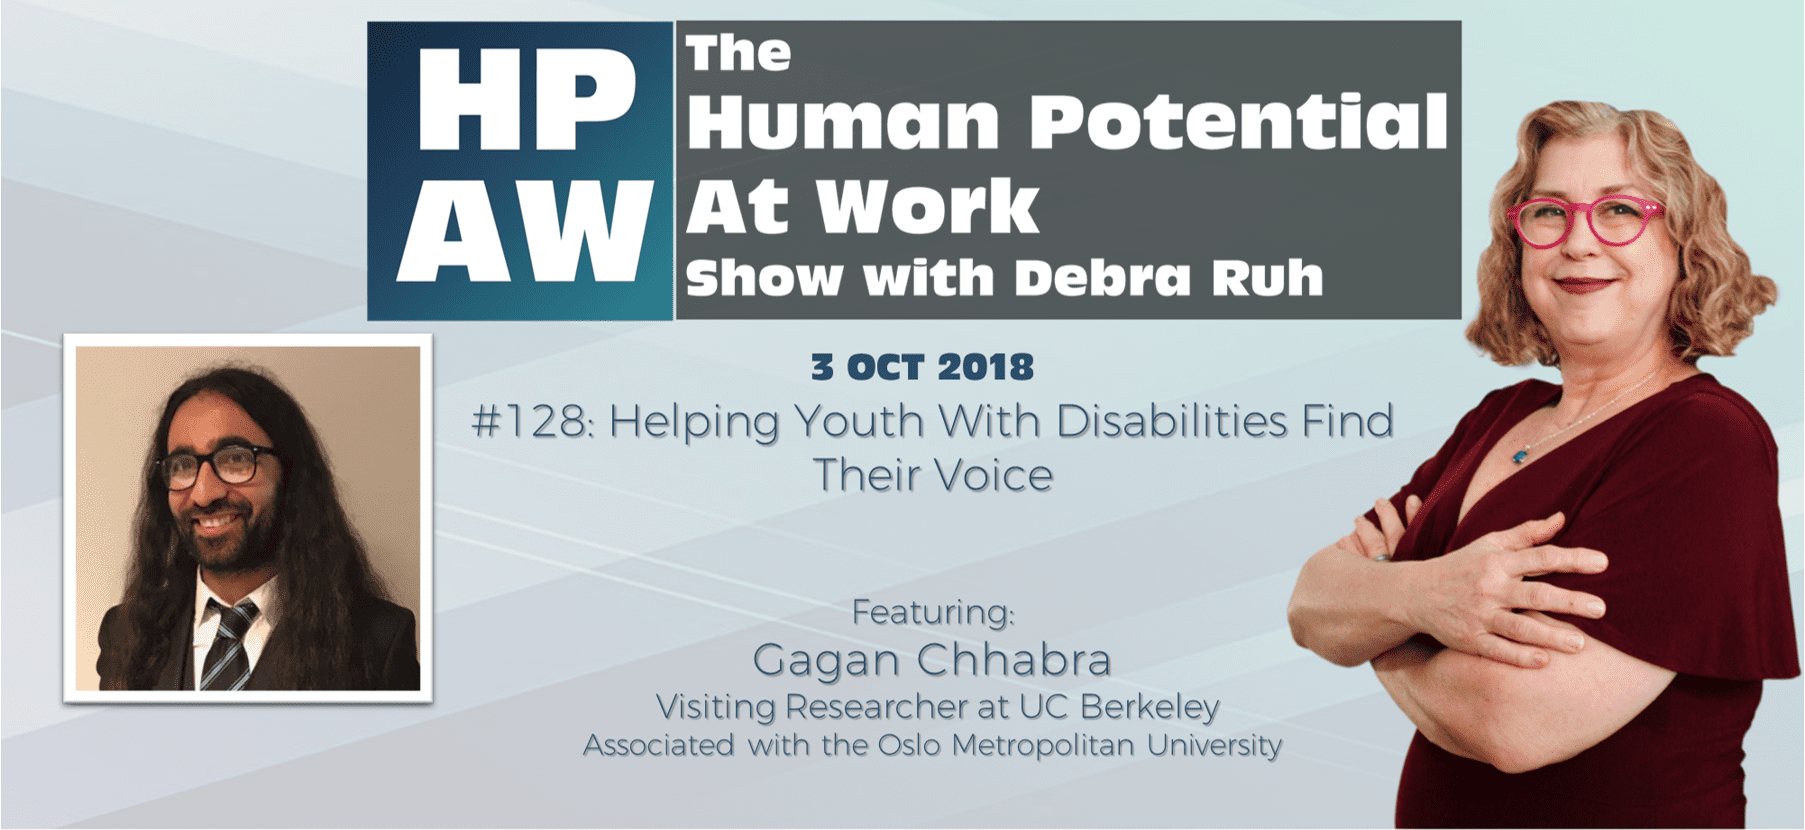 Episode Flyer for #128 Helping Youth With Disabilities Find Their Voice